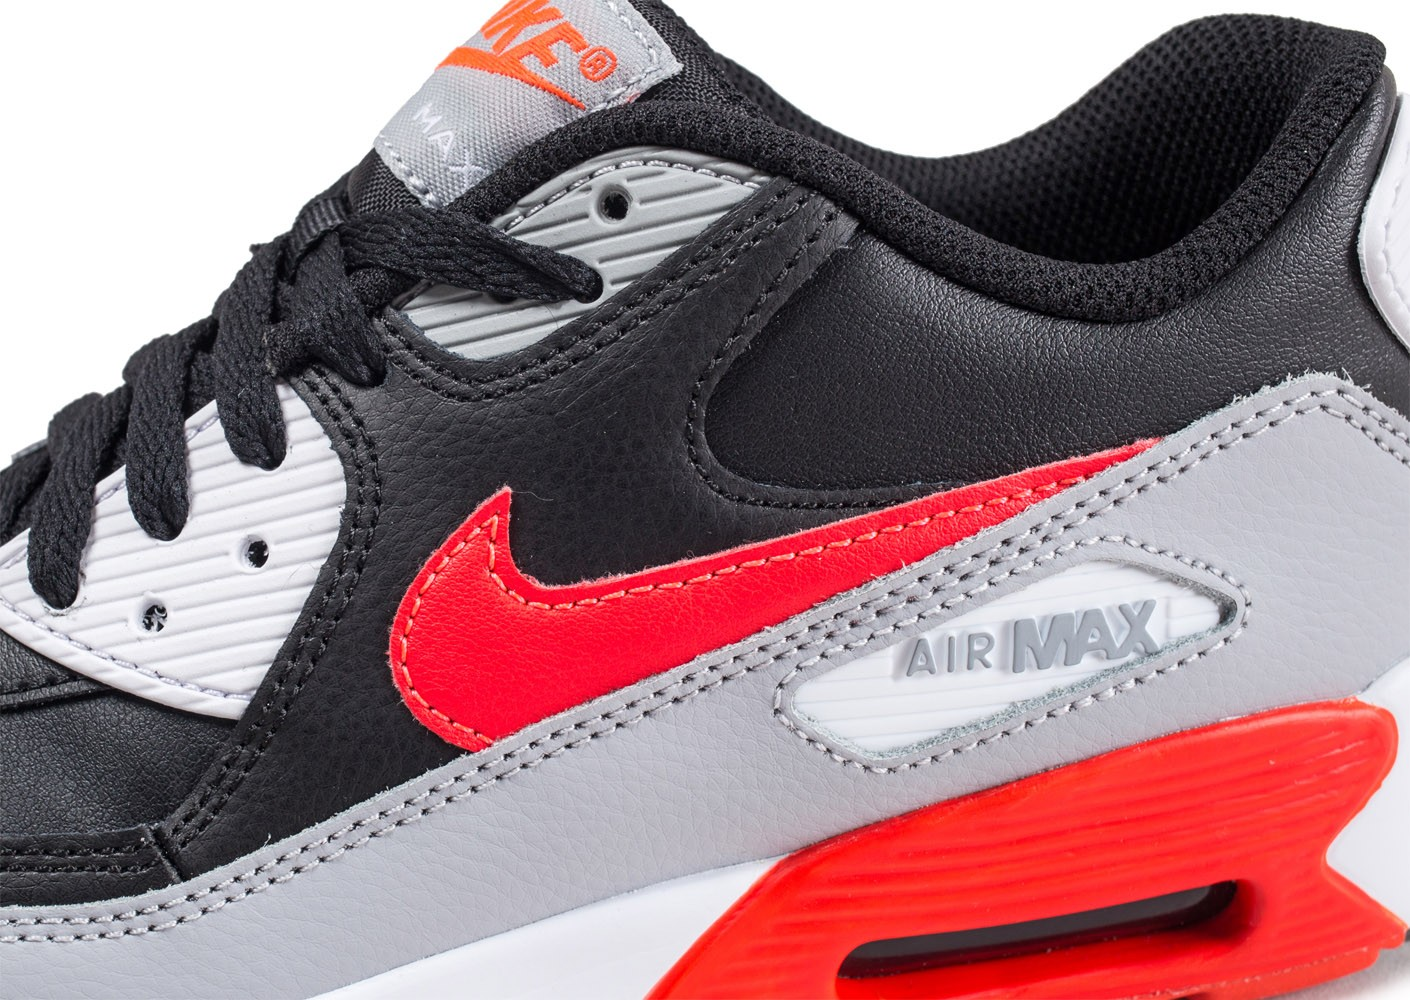 low priced eb634 87c7a ... Chaussures Nike Air Max 90 Leather noire et rouge junior vue dessus